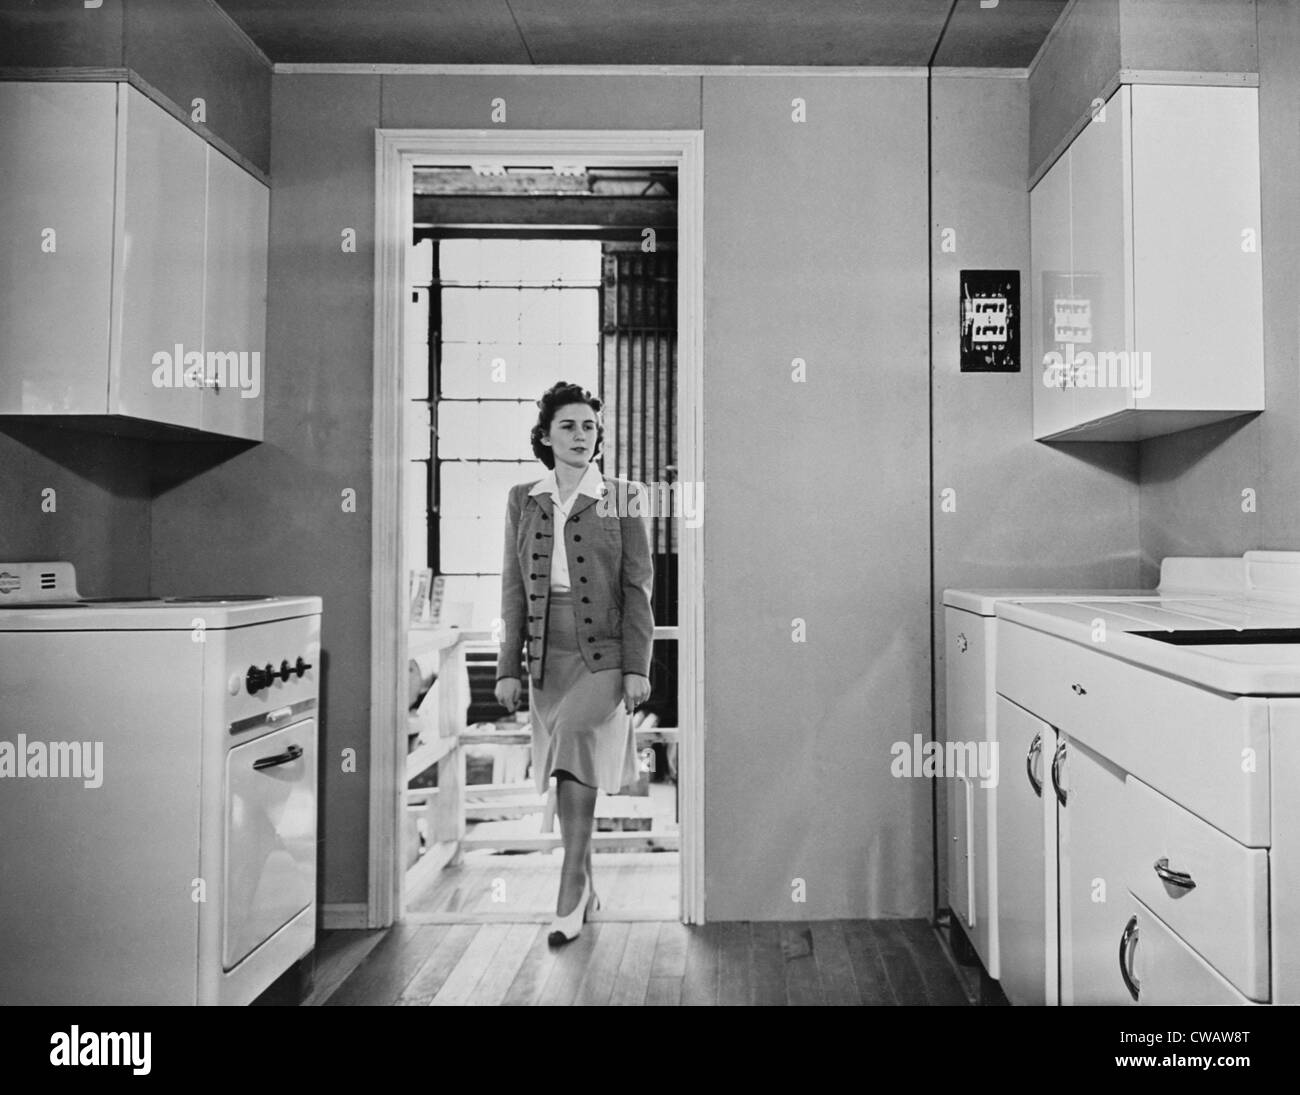 Women 1940s Stockfotos & Women 1940s Bilder - Alamy